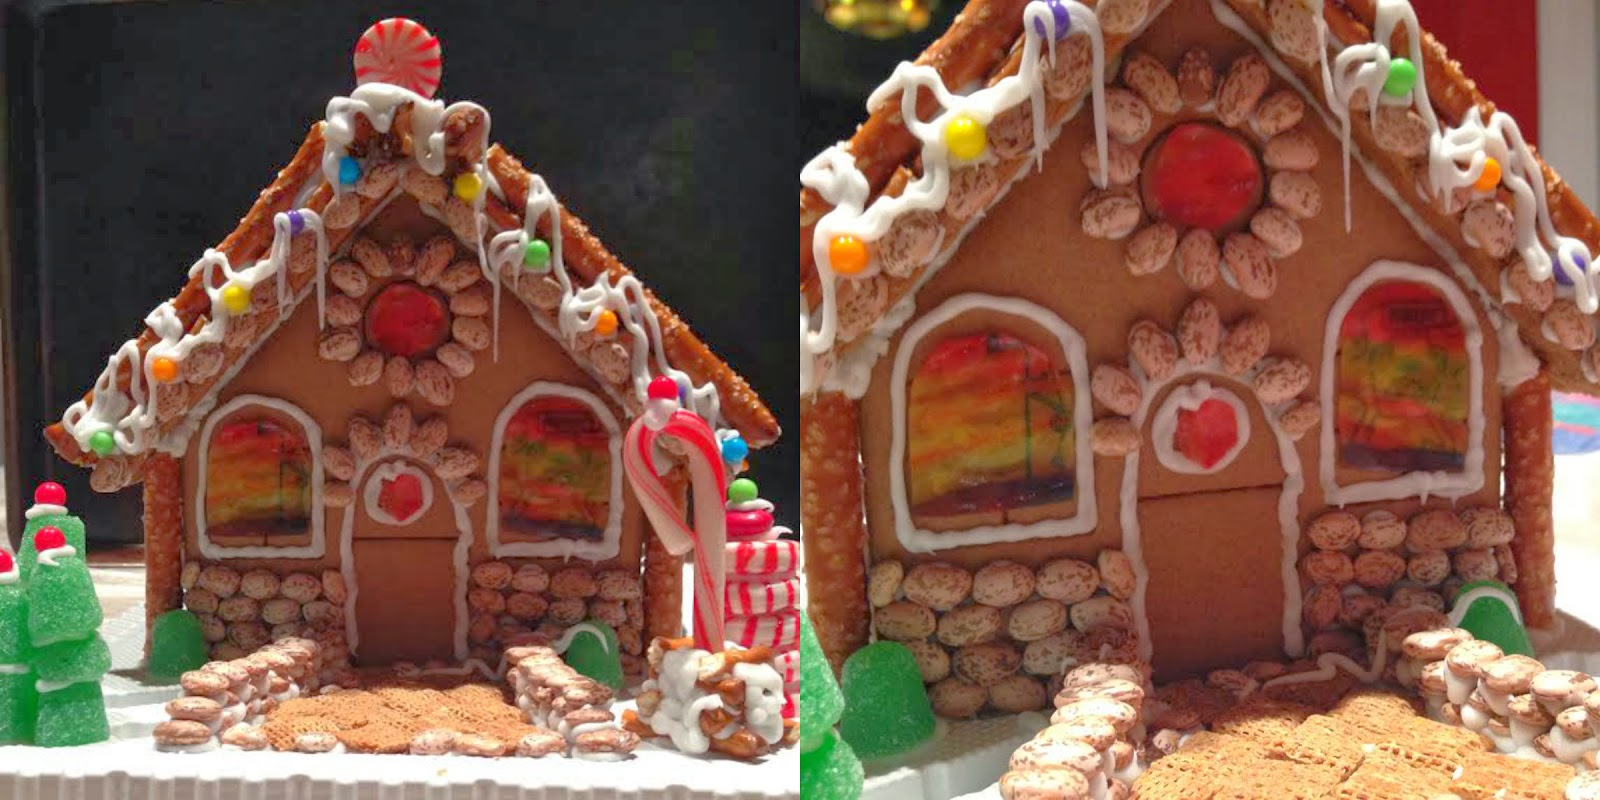 Gingerbread House, Gingerbread House with Stained Glass Windows